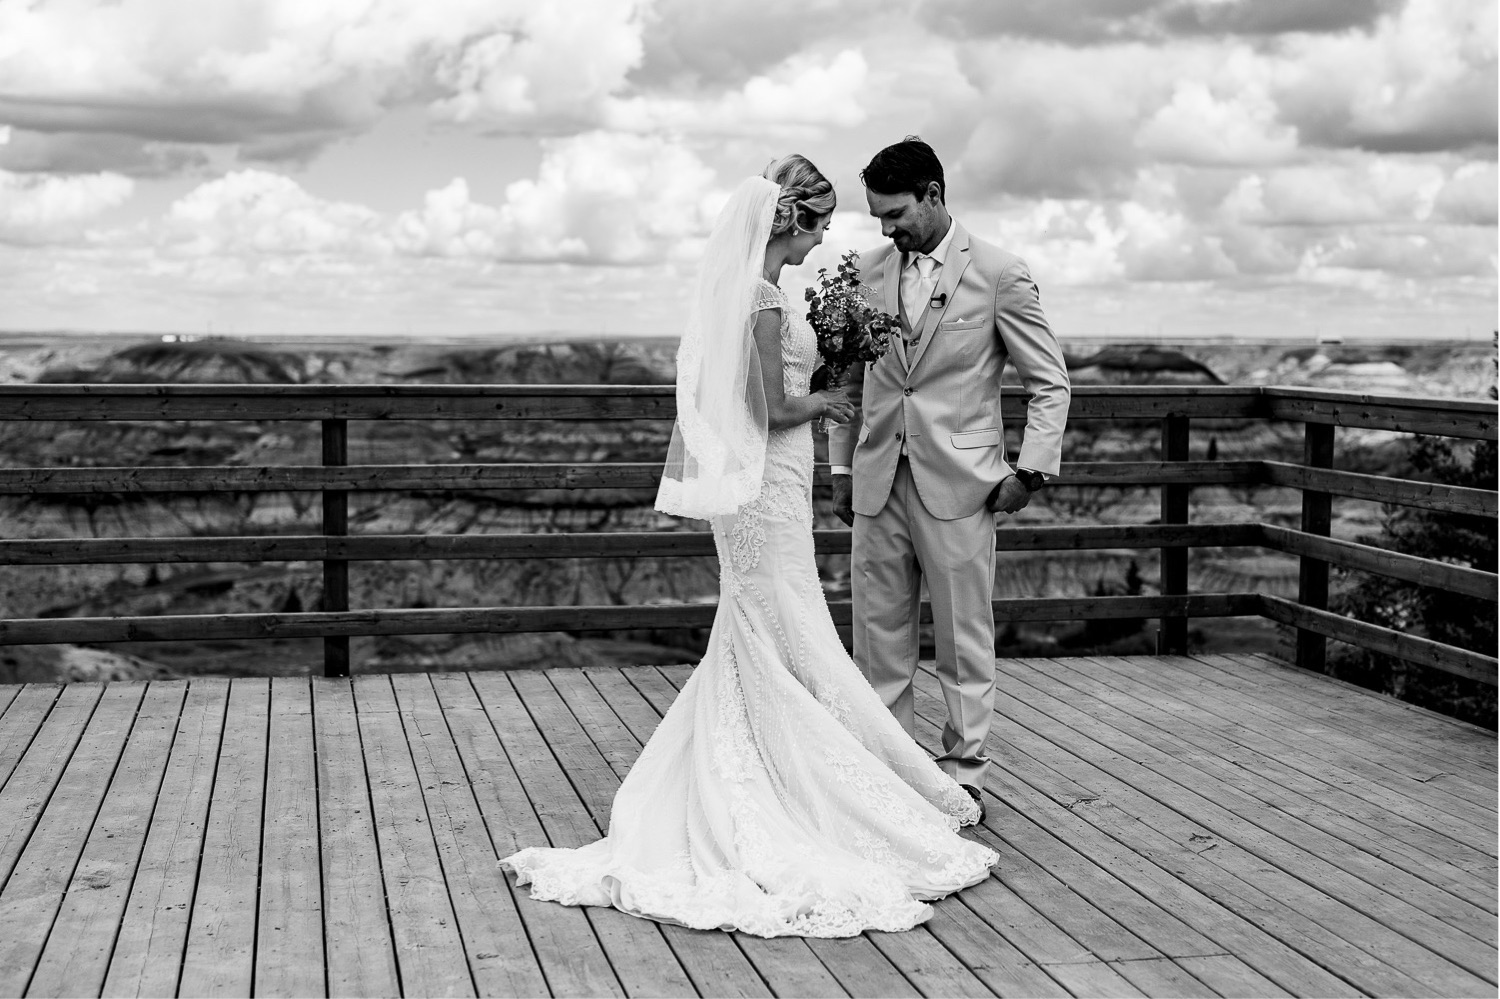 23_Shannon and Dylan June 15 ALL RAW5004_Canyon_Photographer_Alberta_HorseshoeCanyon_Drumheller_Horseshoe_Wedding_Groom_Bride.jpg